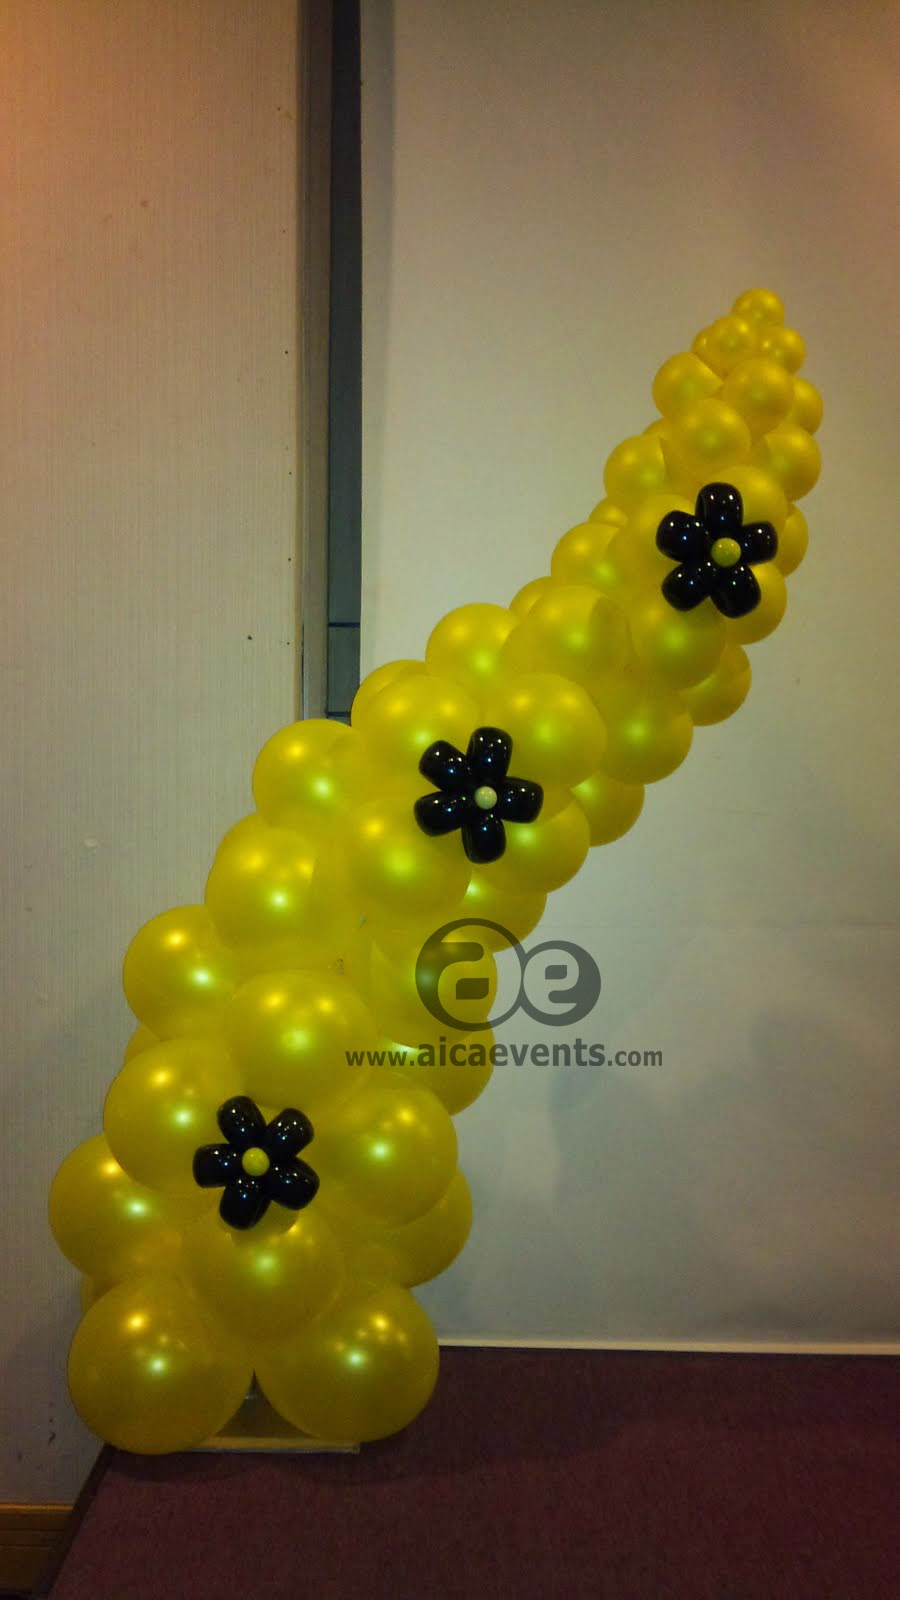 aicaevents: Balloon Decorations for parties